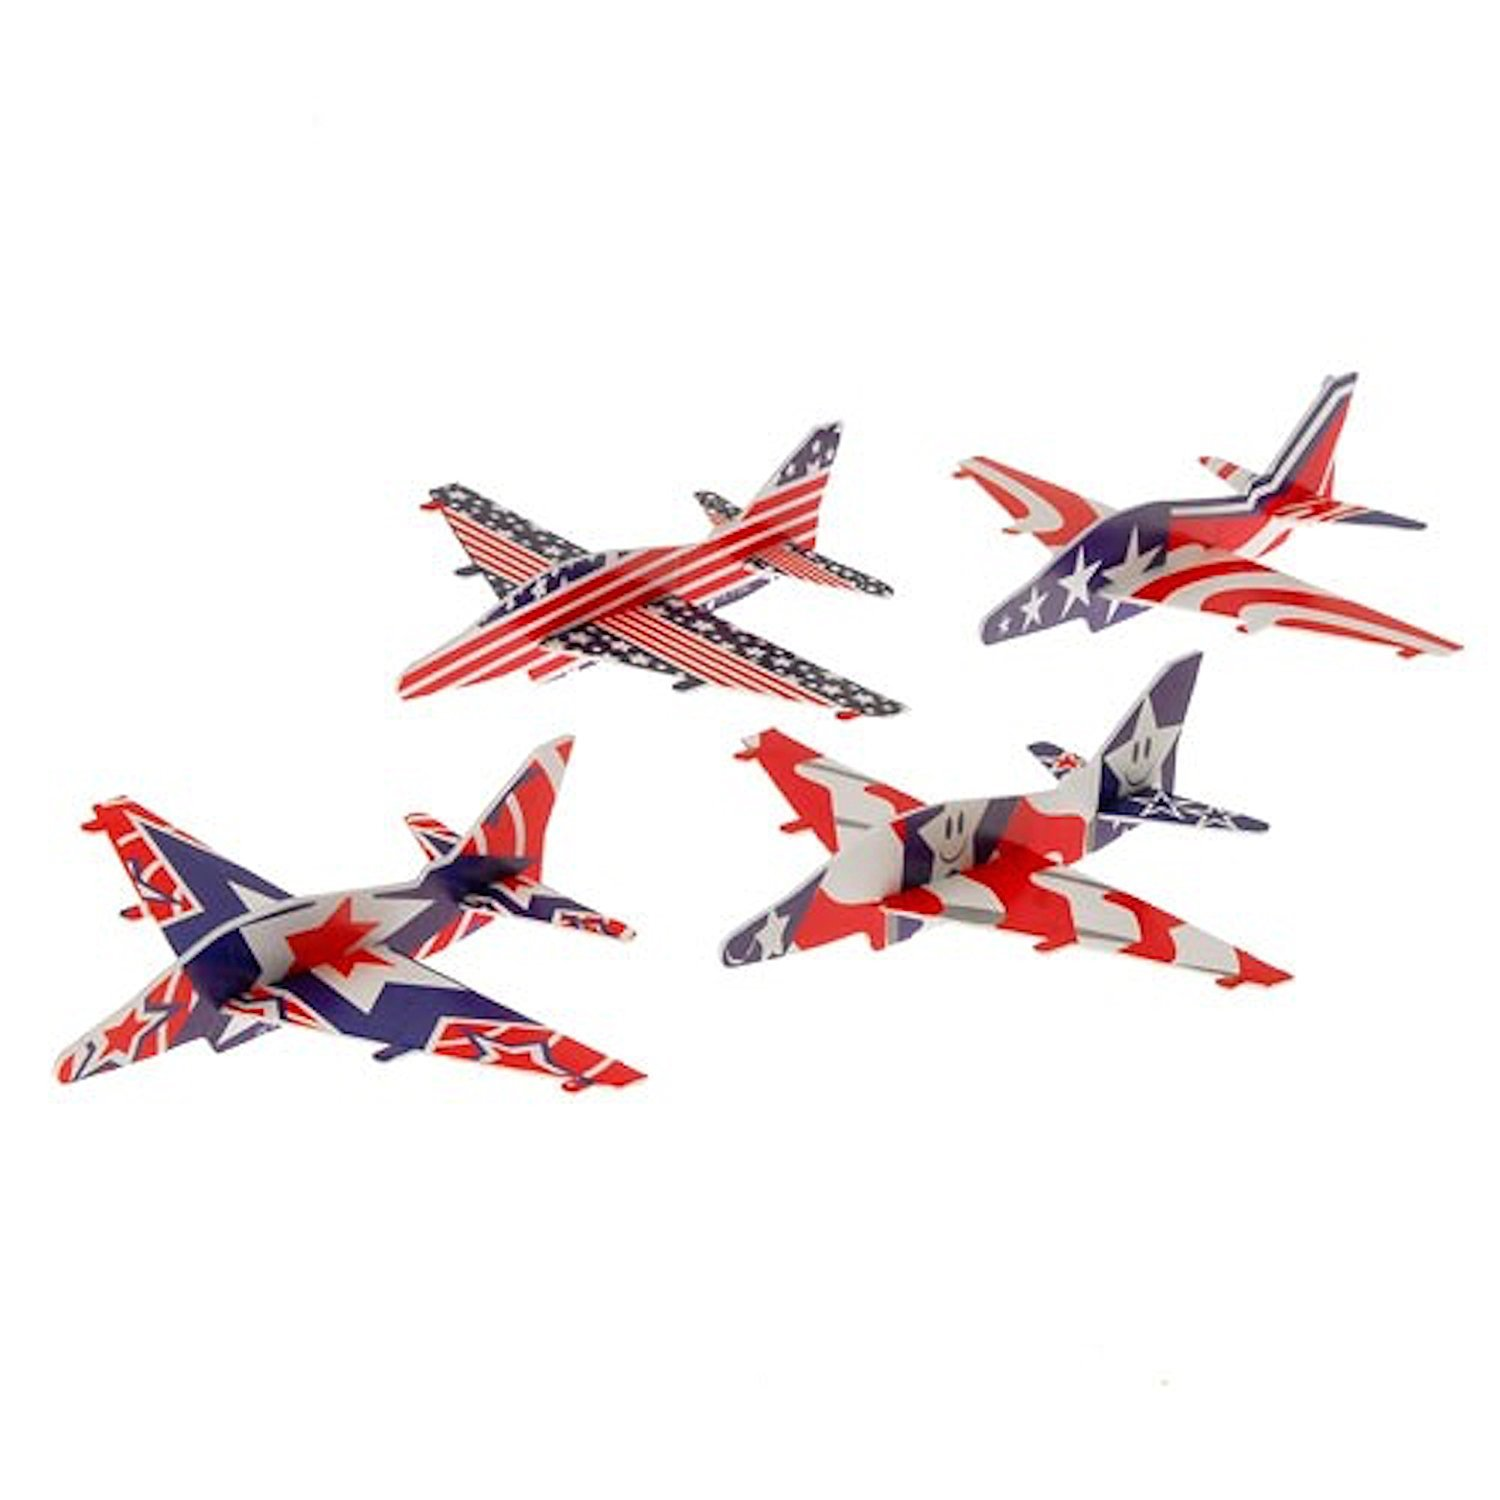 Lot Of 12 Assorted Patriotic Theme Holographic Plane Glider Toys, Lot Of 12 By US Toy by